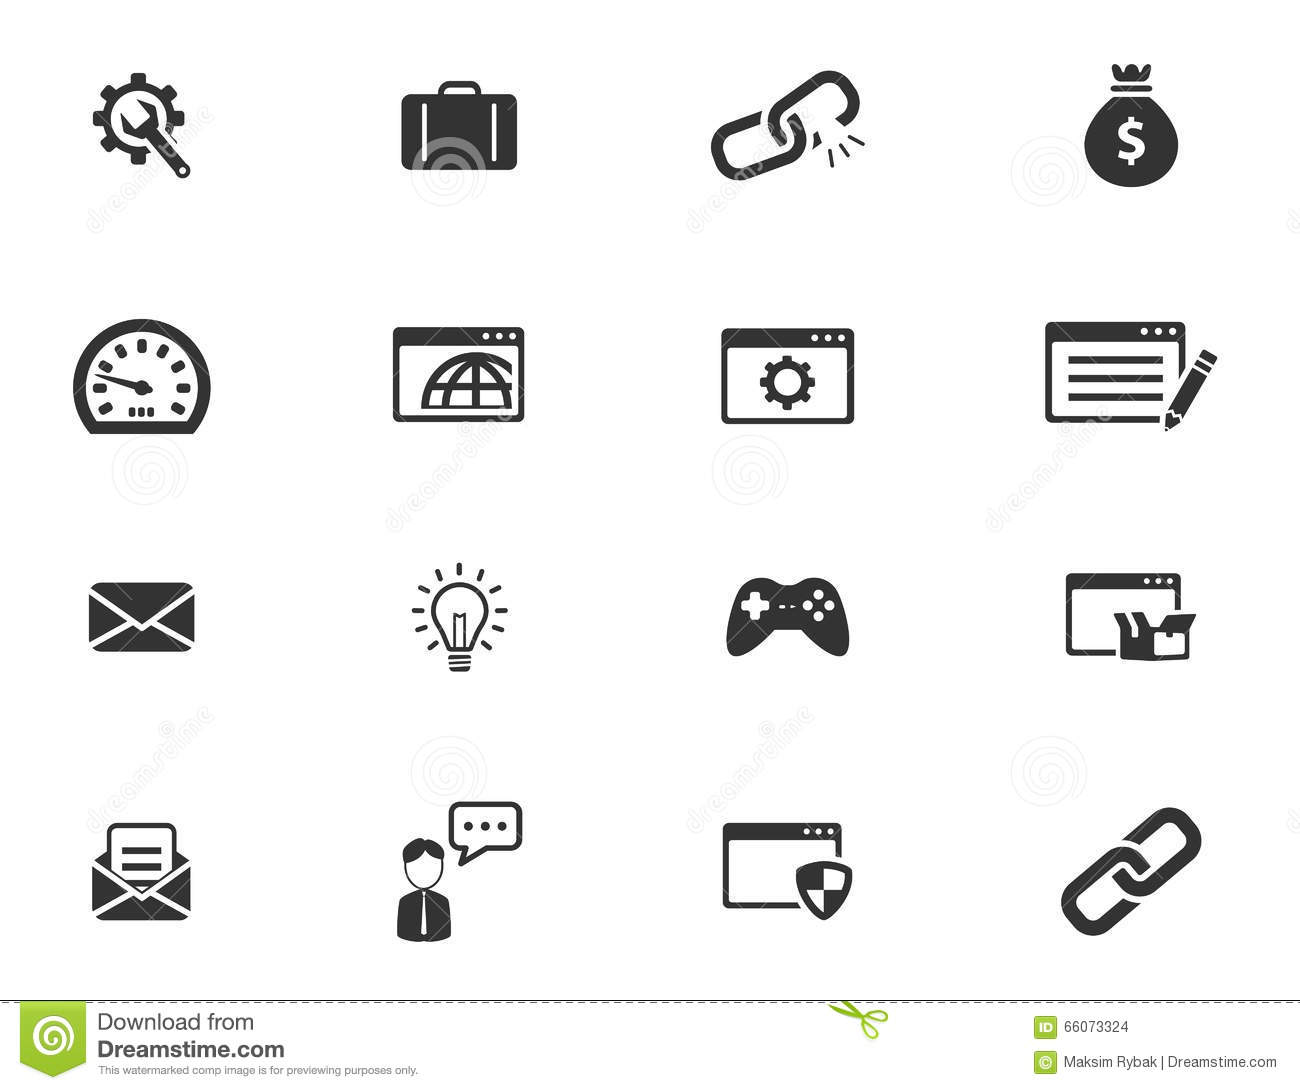 seo and development simply icons stock image